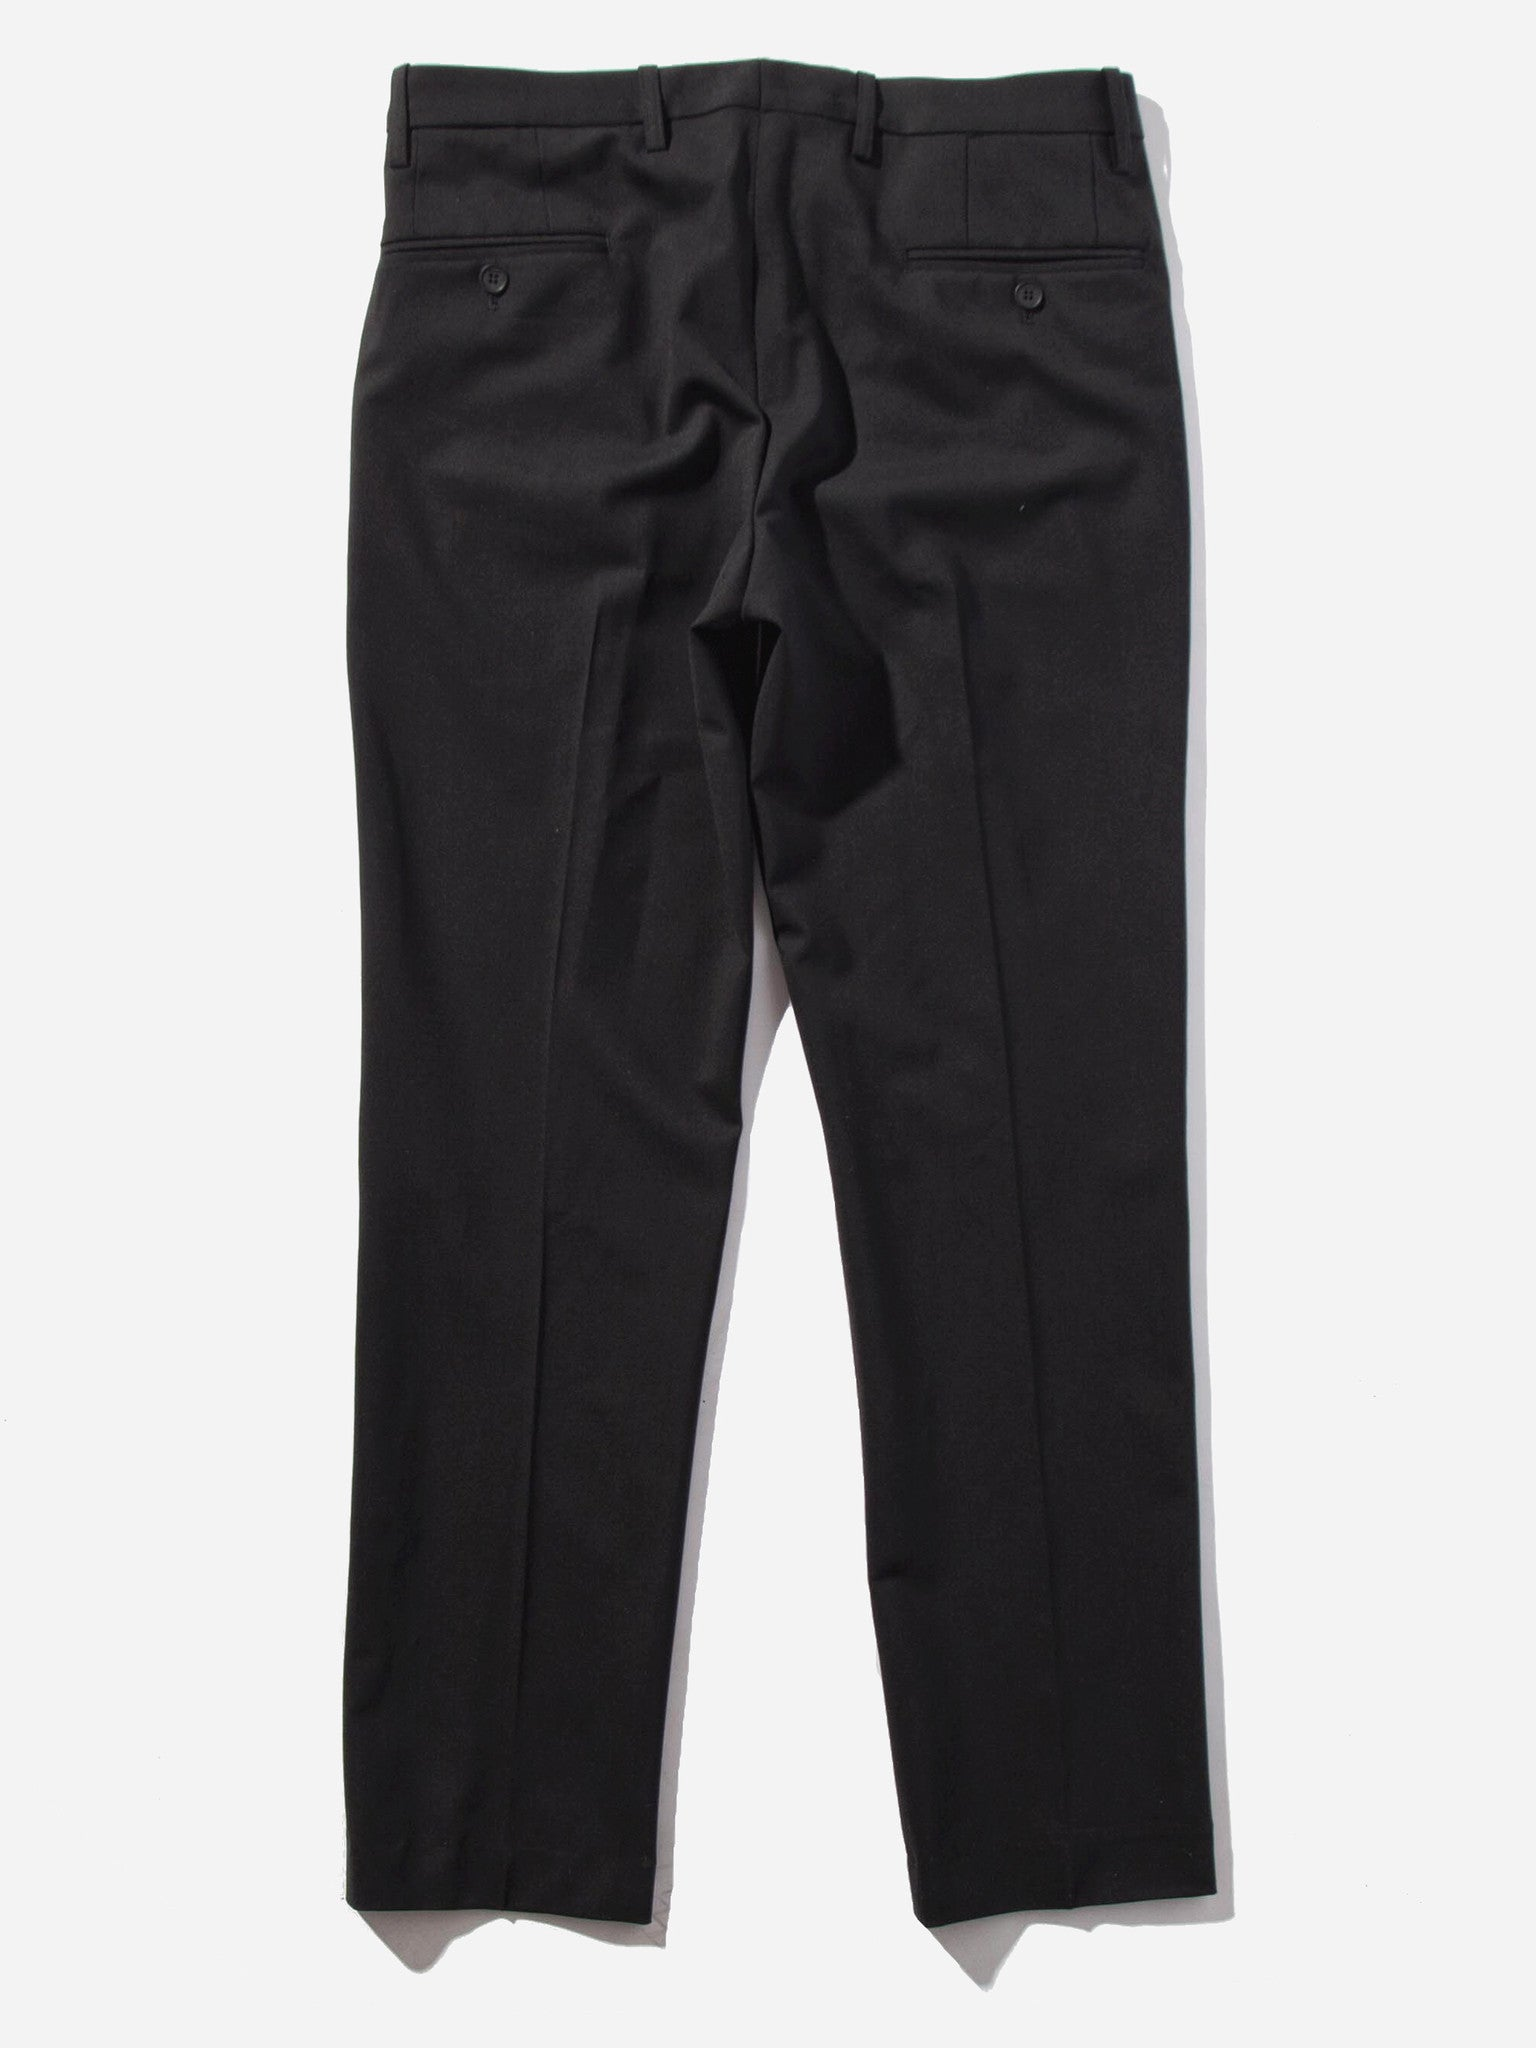 Black Cropped Tailored Trouser 7